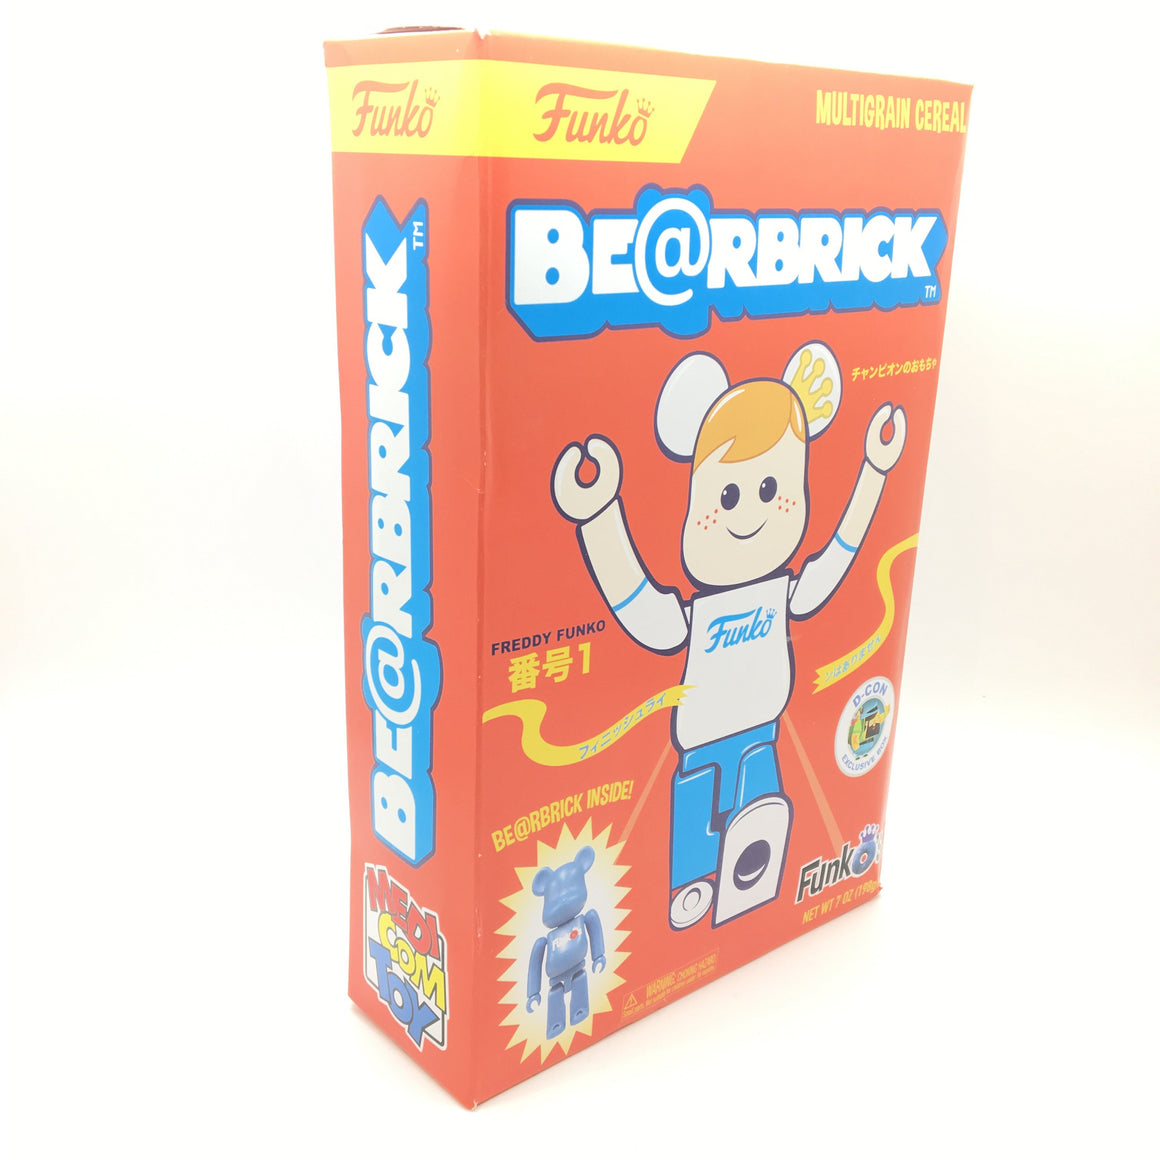 Bearbrick Funko's Cereal with 100% Bearbrick Figure Designer Con ( DCON ) Exclusive - Red Box